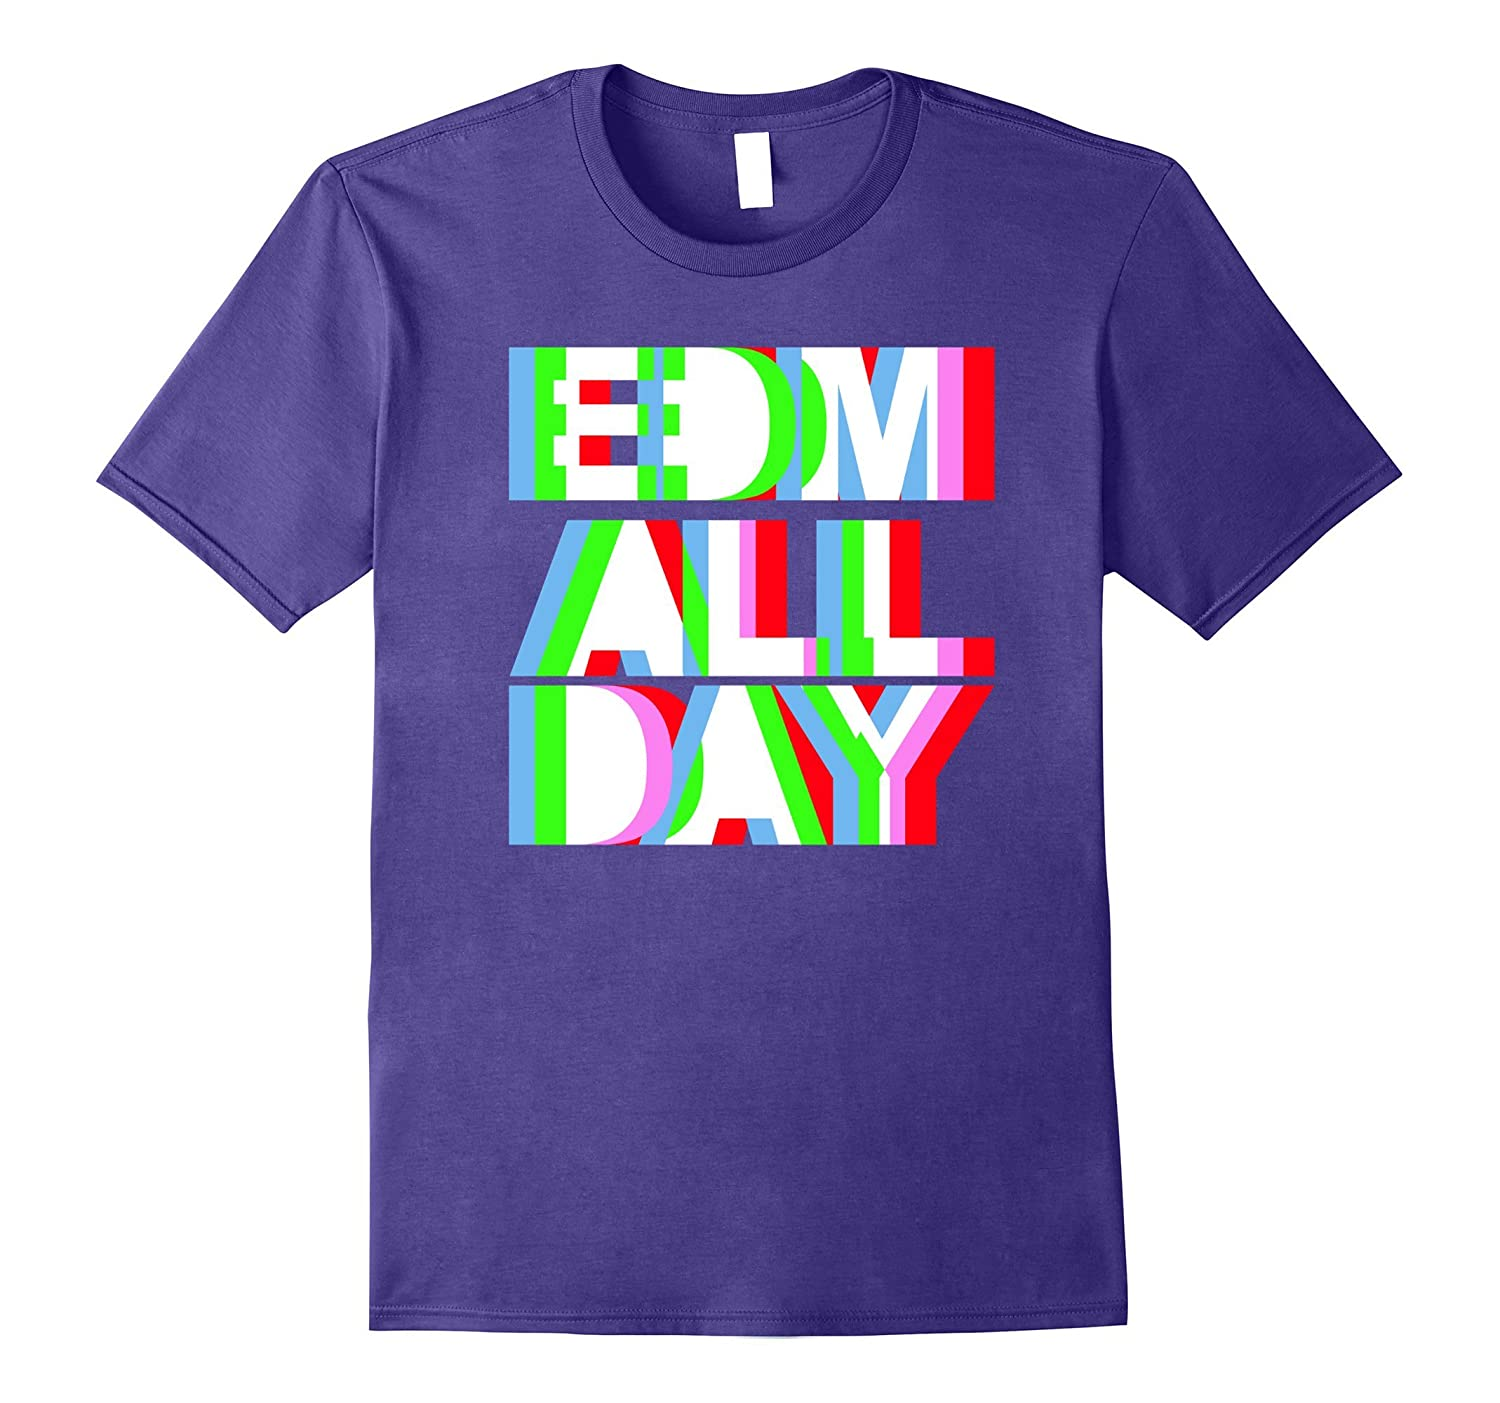 Cool EDM T-Shirt - Neon Anaglyph Style Rave Tee - White Ink-T-Shirt